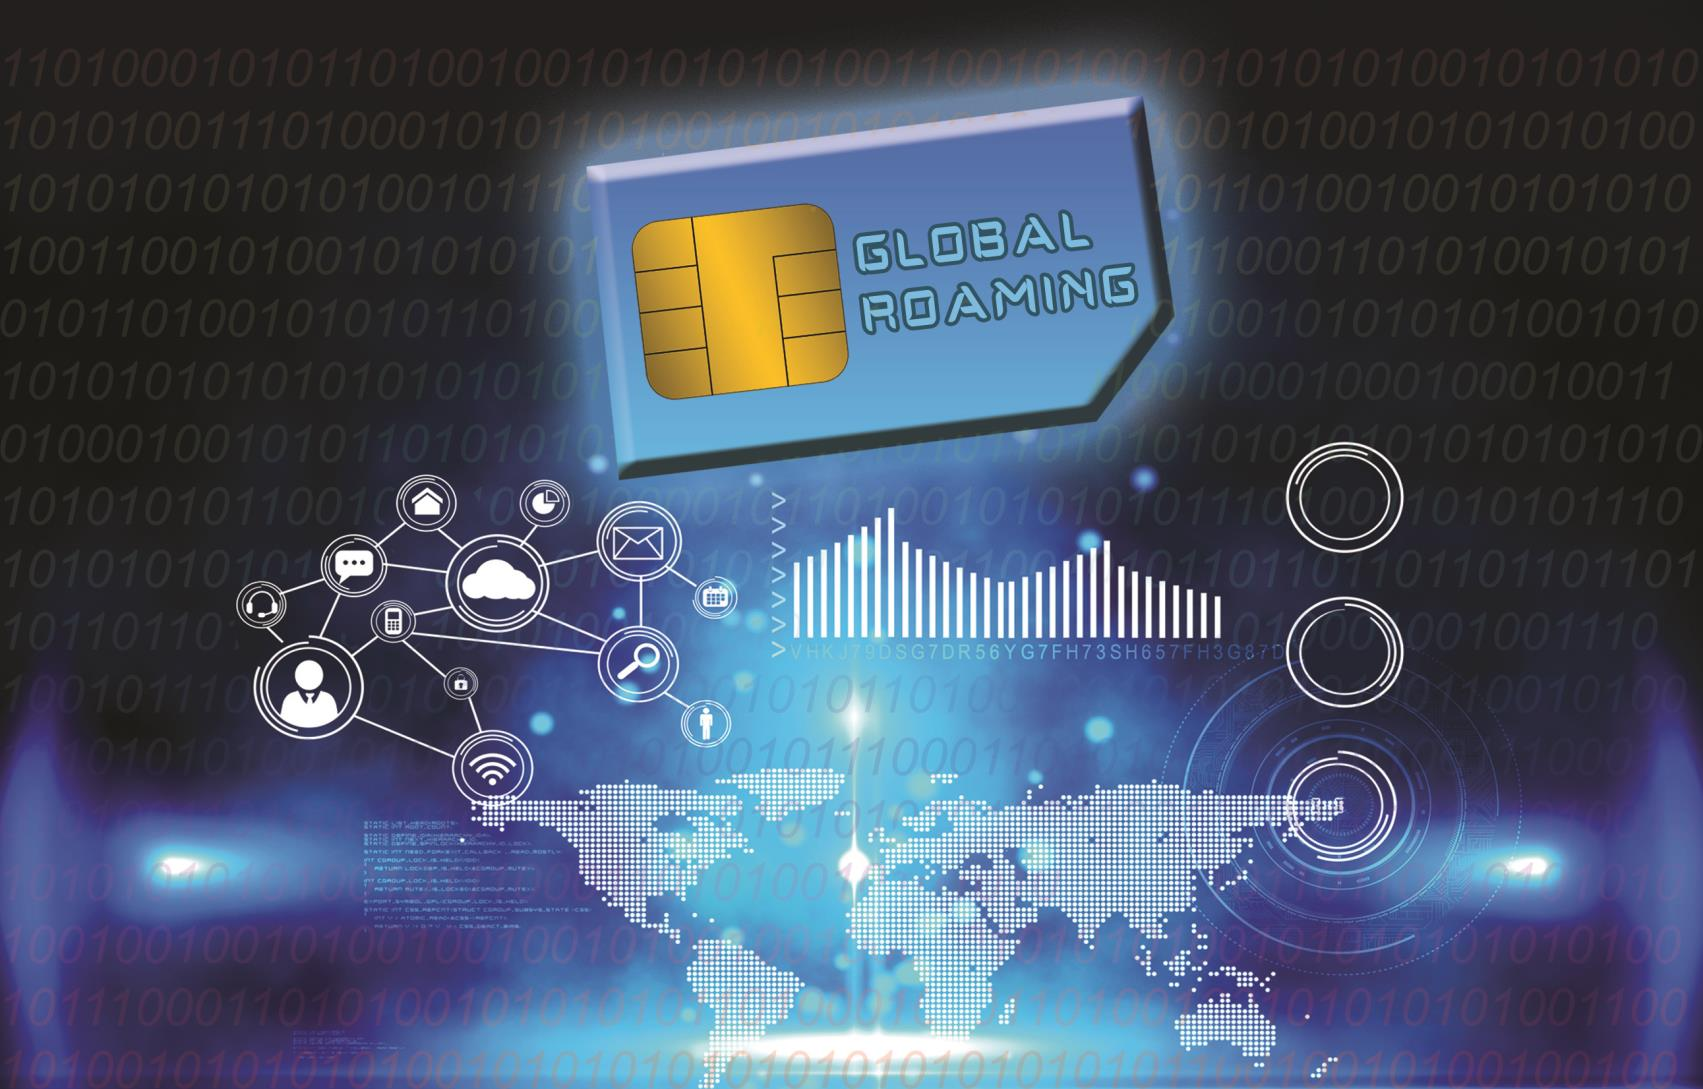 MVNO Solution for Highly Profitable Global Roaming Services A